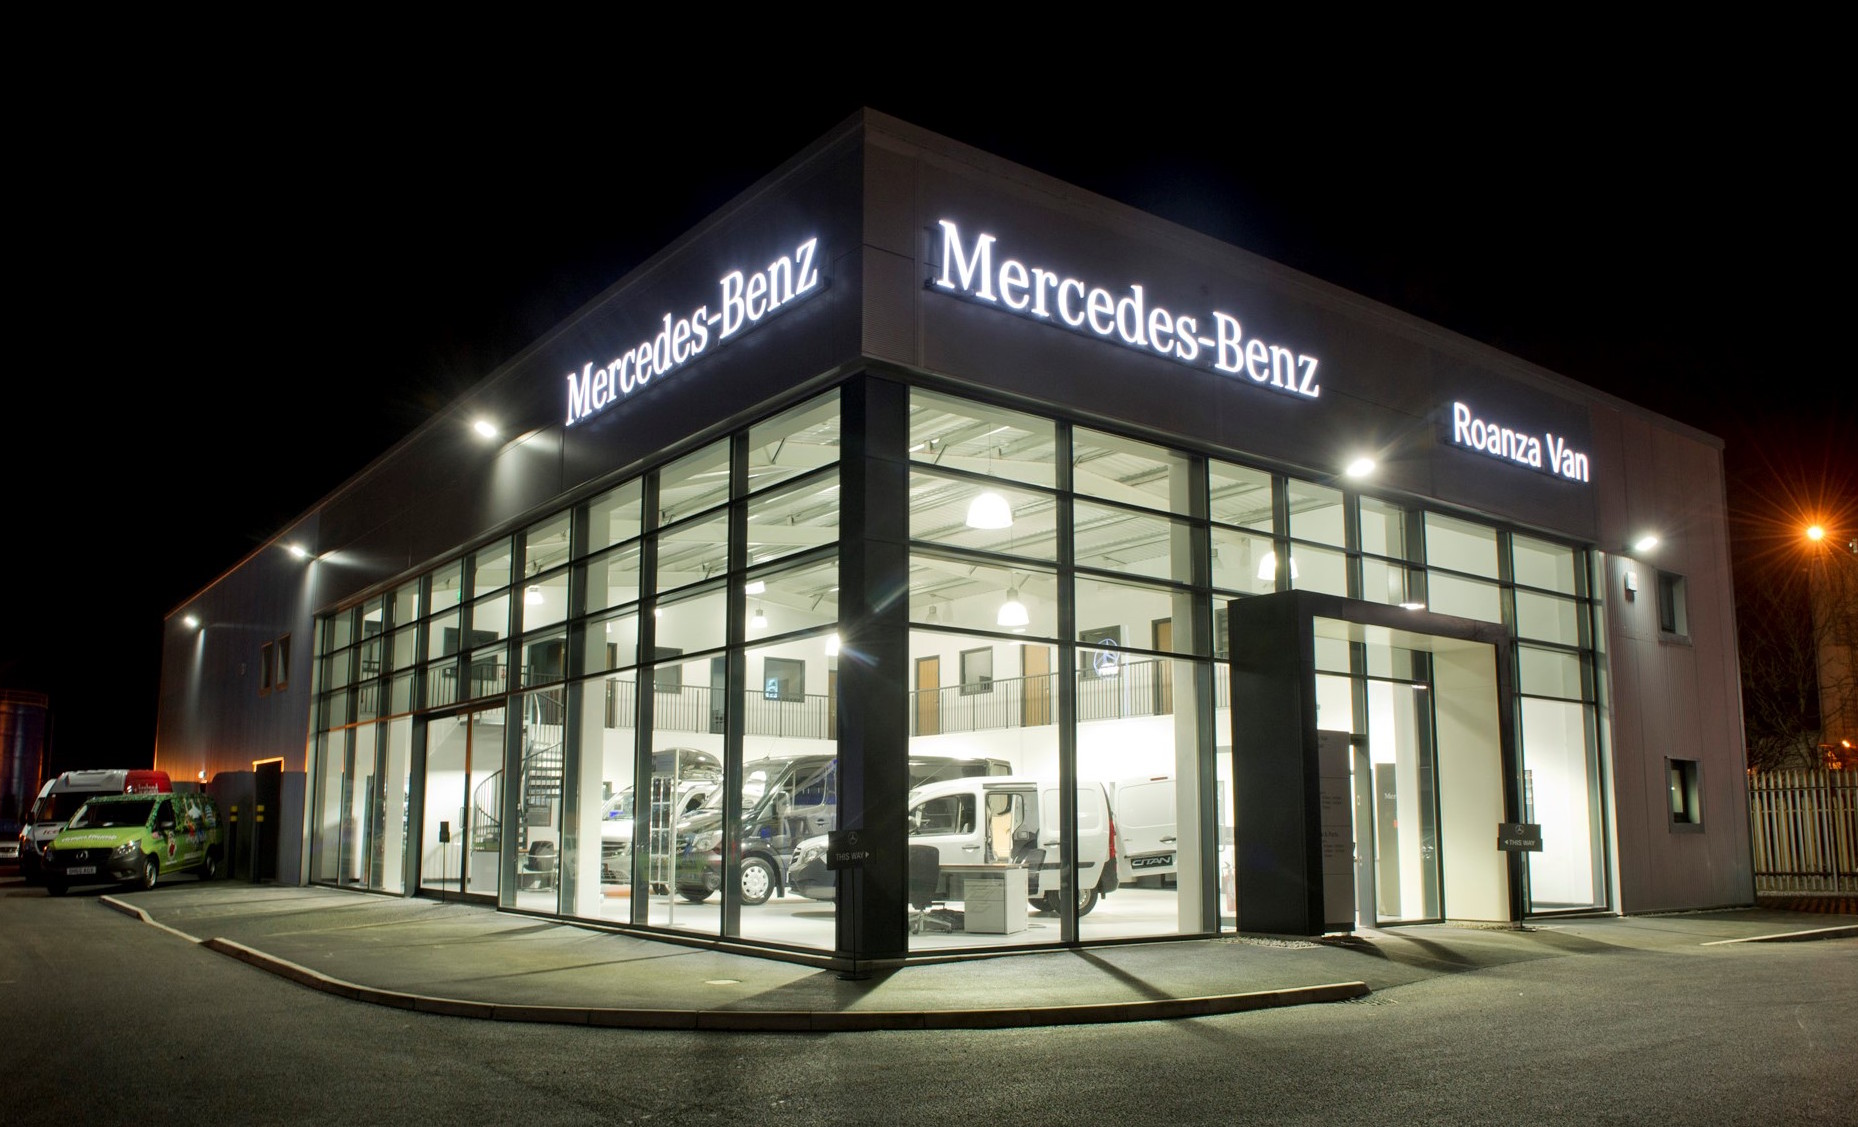 Mercedes benz dealer roanza truck van launches 1m for Mercedes benz dealers in michigan